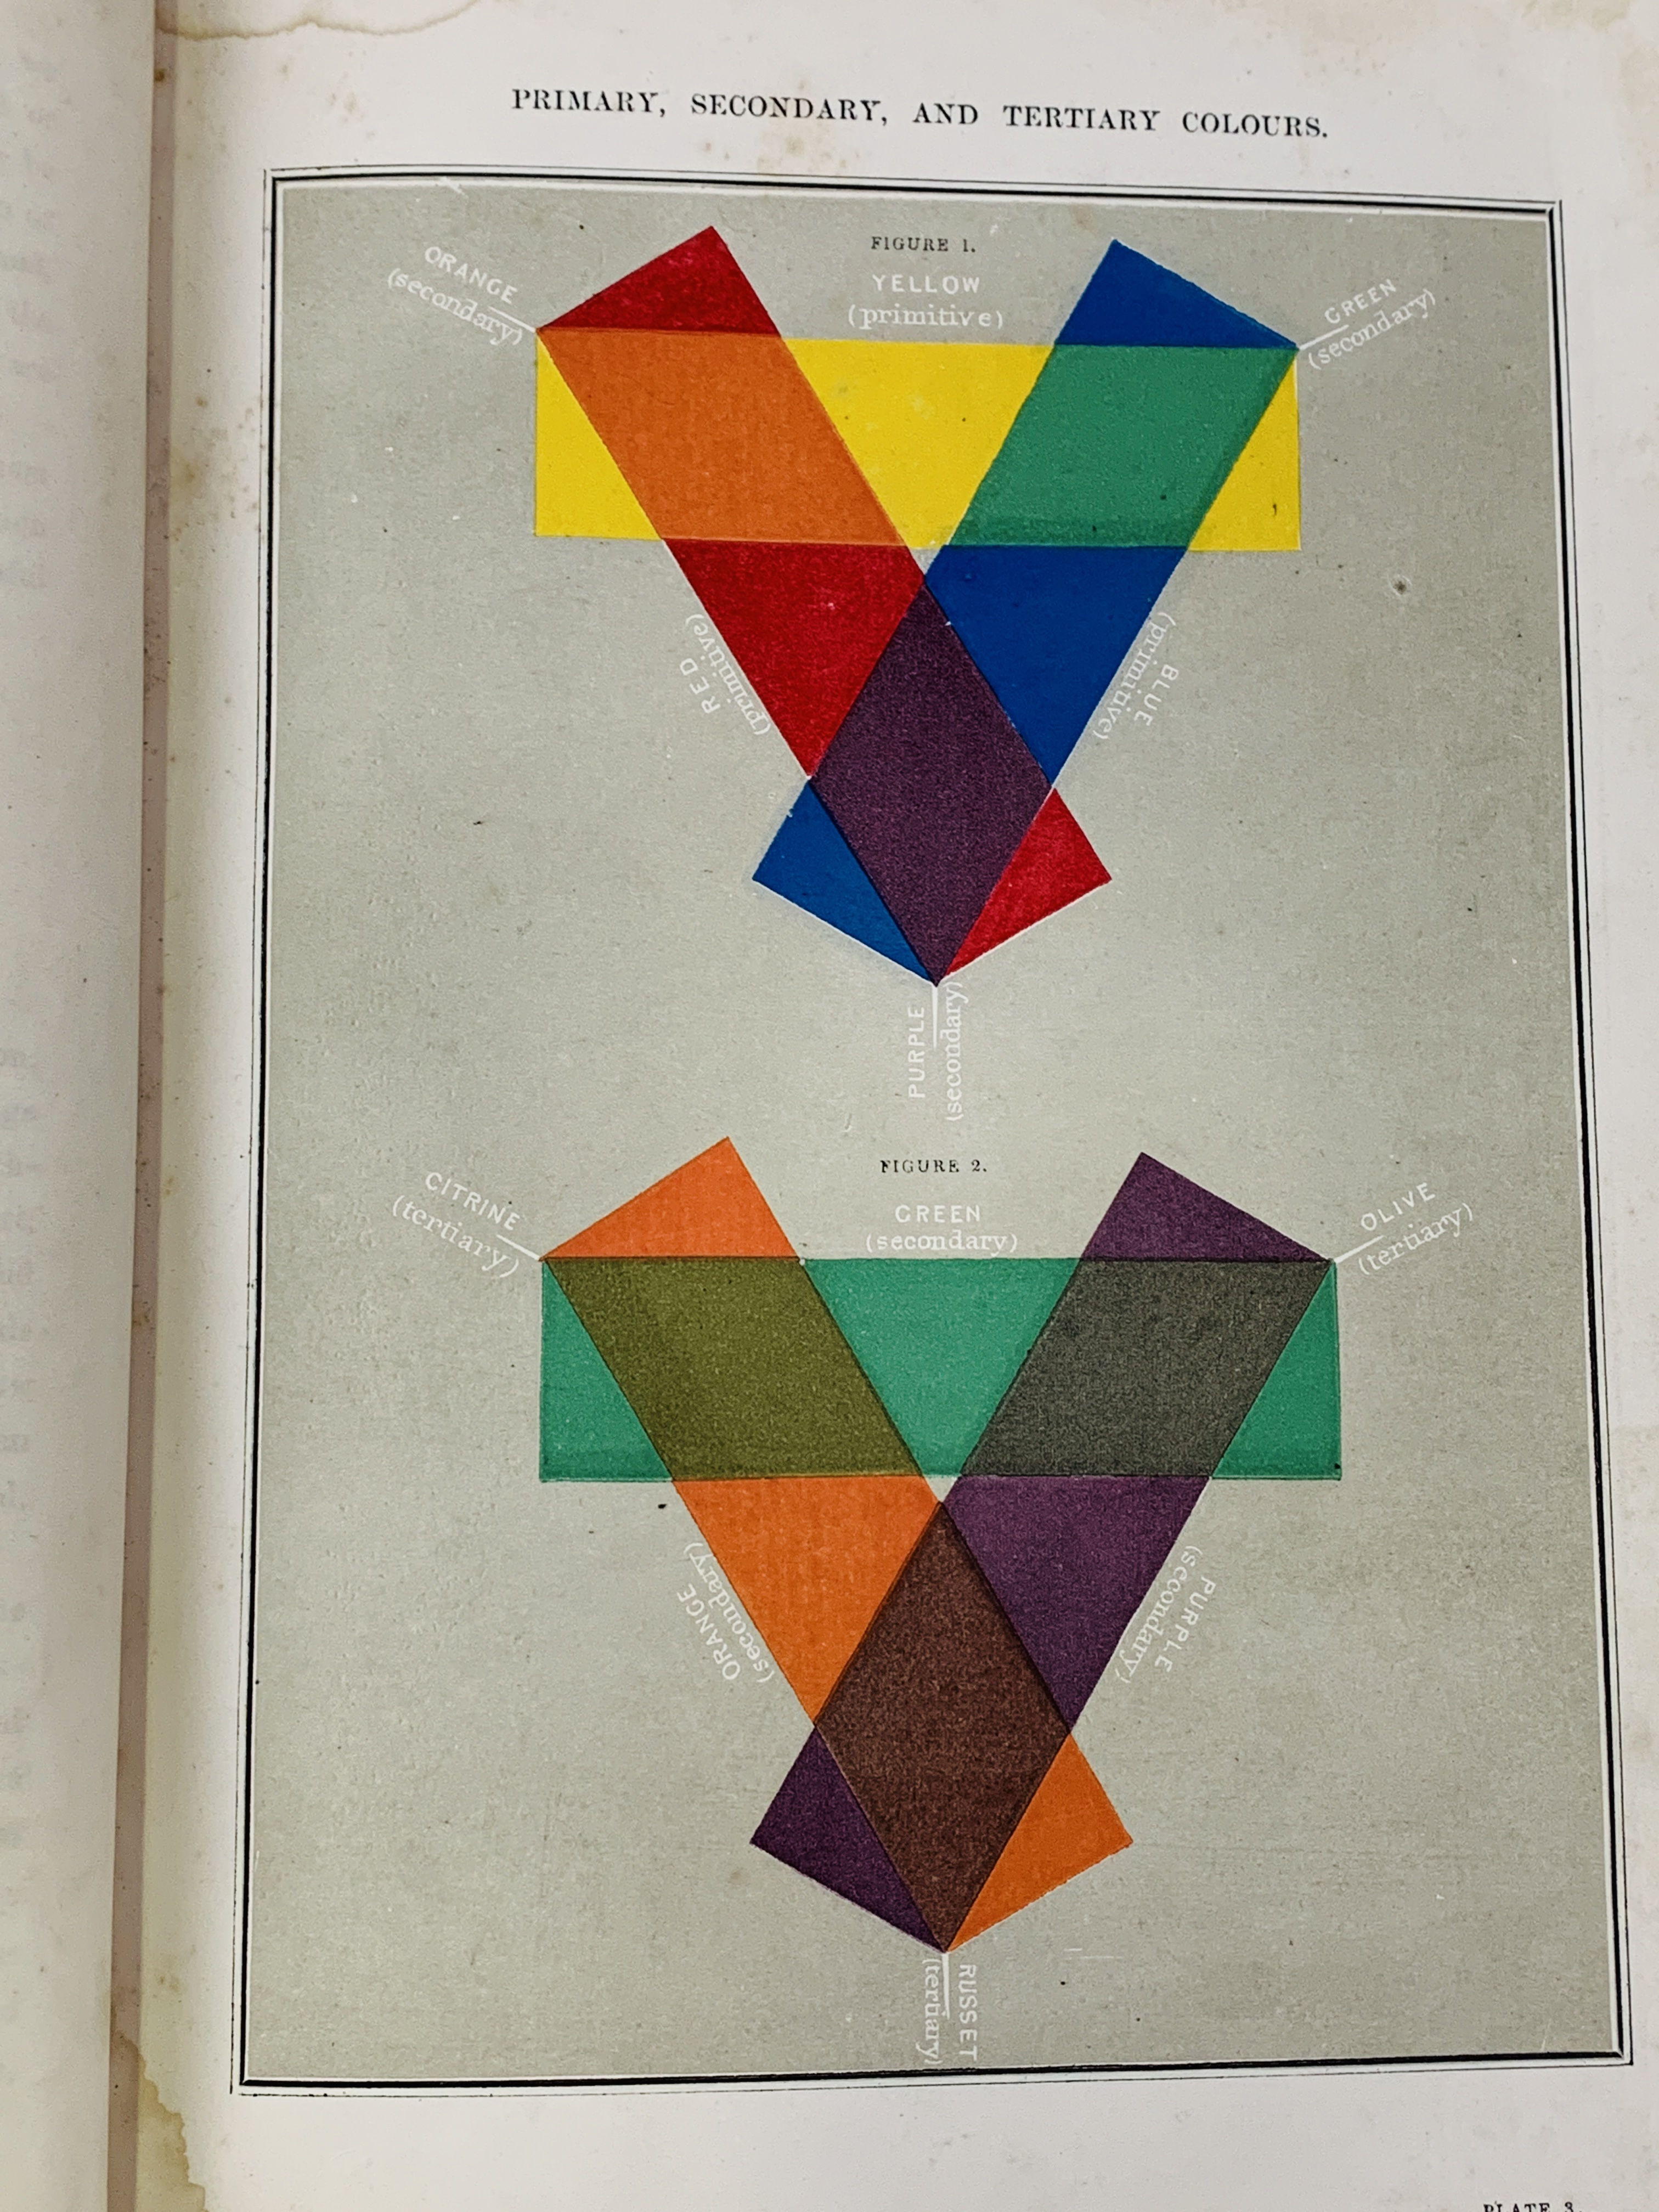 Landscape Painting in Watercolours, 1855, Sketching Without a Master, and Linear Perspective - Image 2 of 7